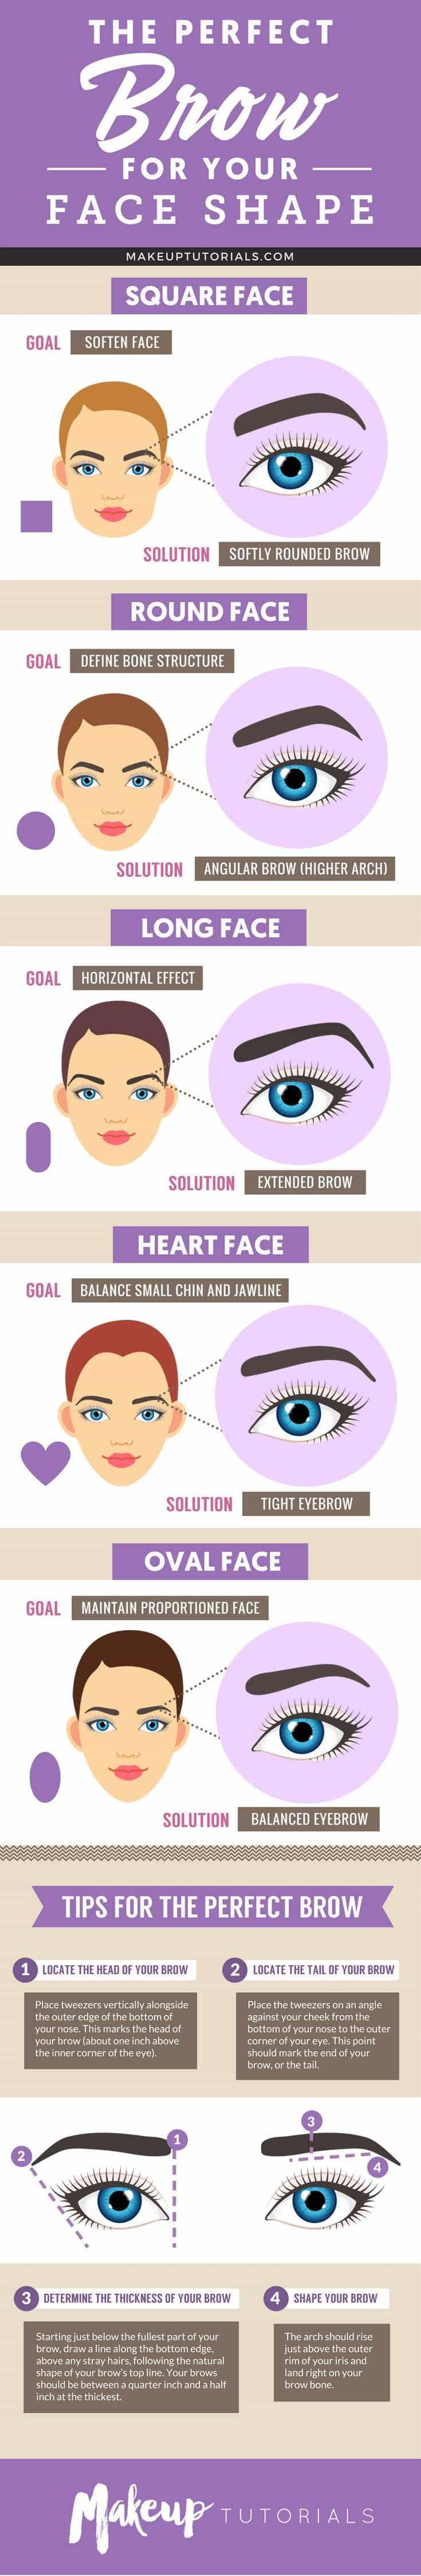 Eyebrow Tutorial: Finding The Right Brow Shape For Your Face